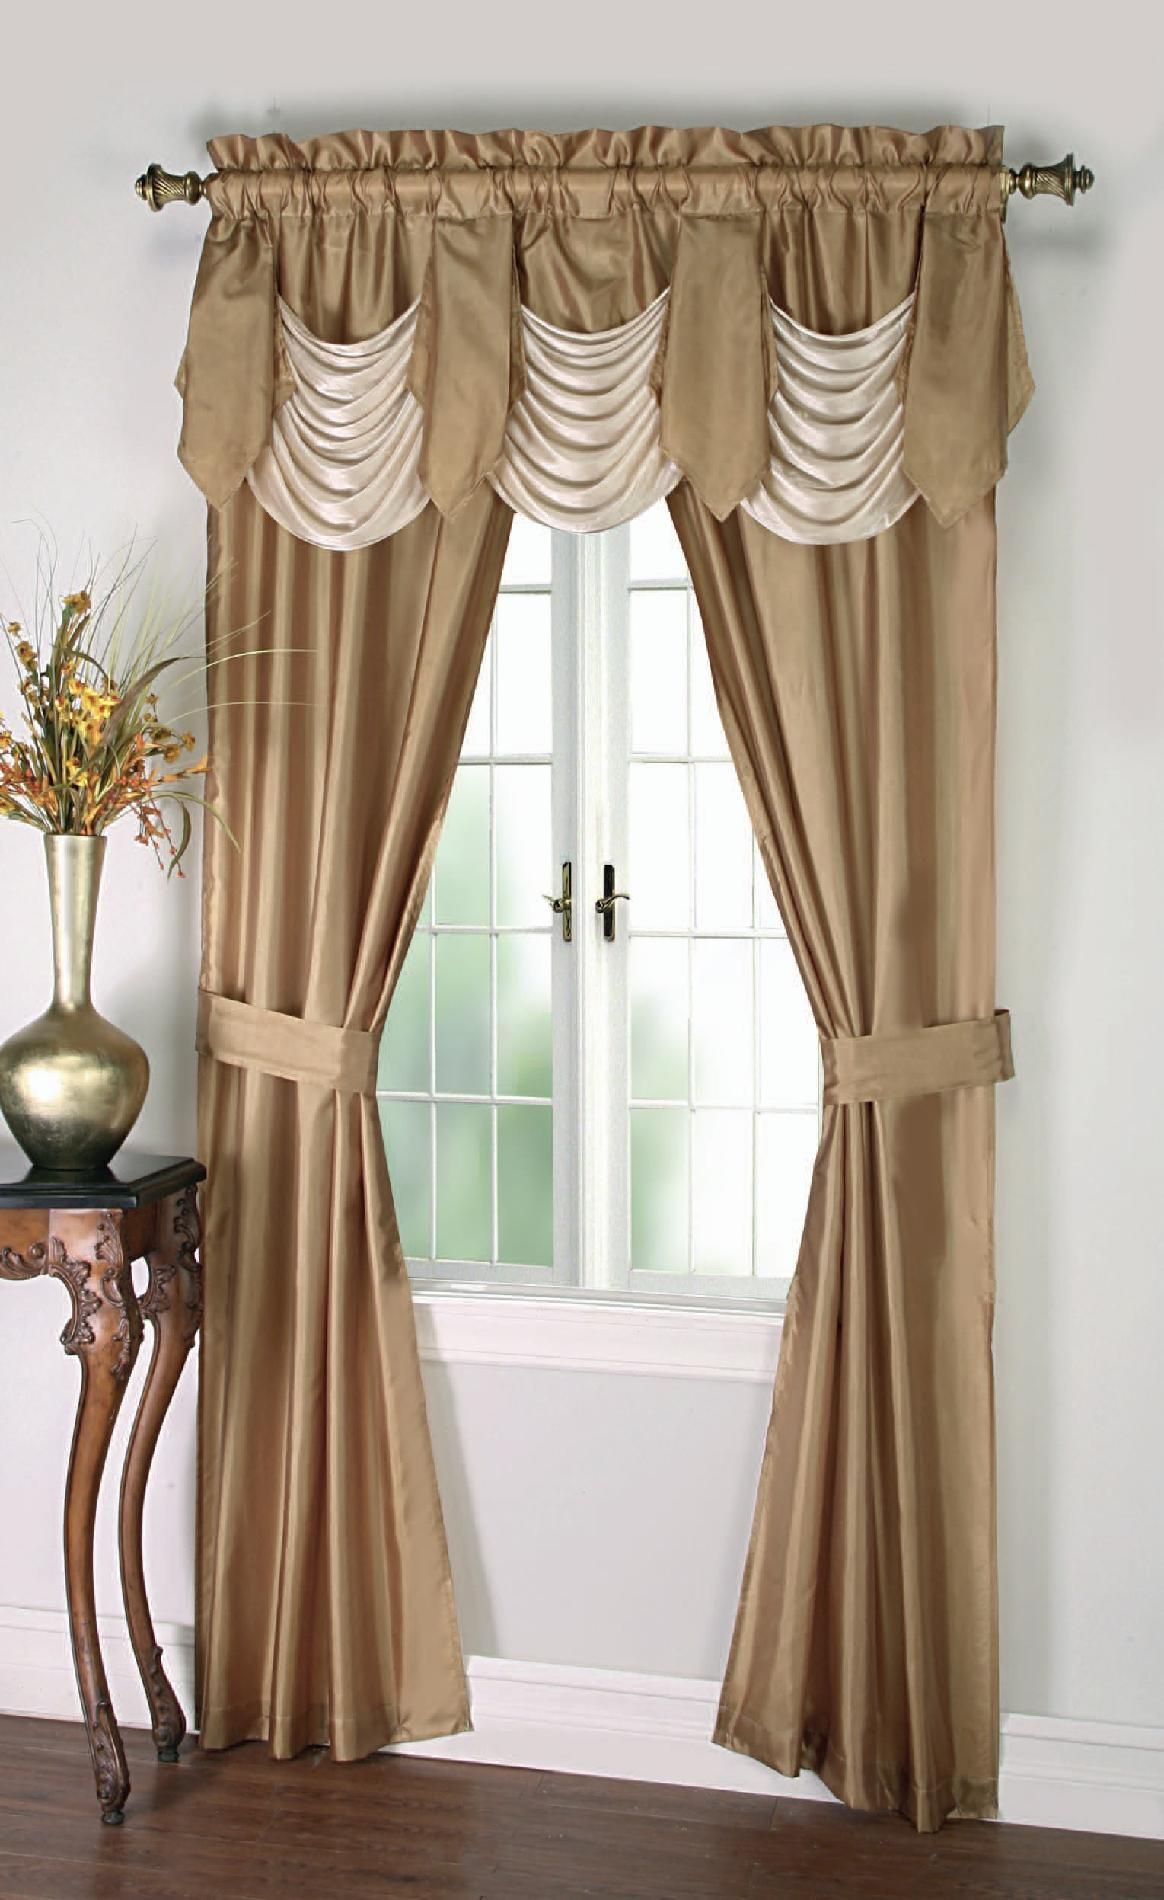 Cannon 5 Piece Curtain Panels Valance Tiebacks Bellany For